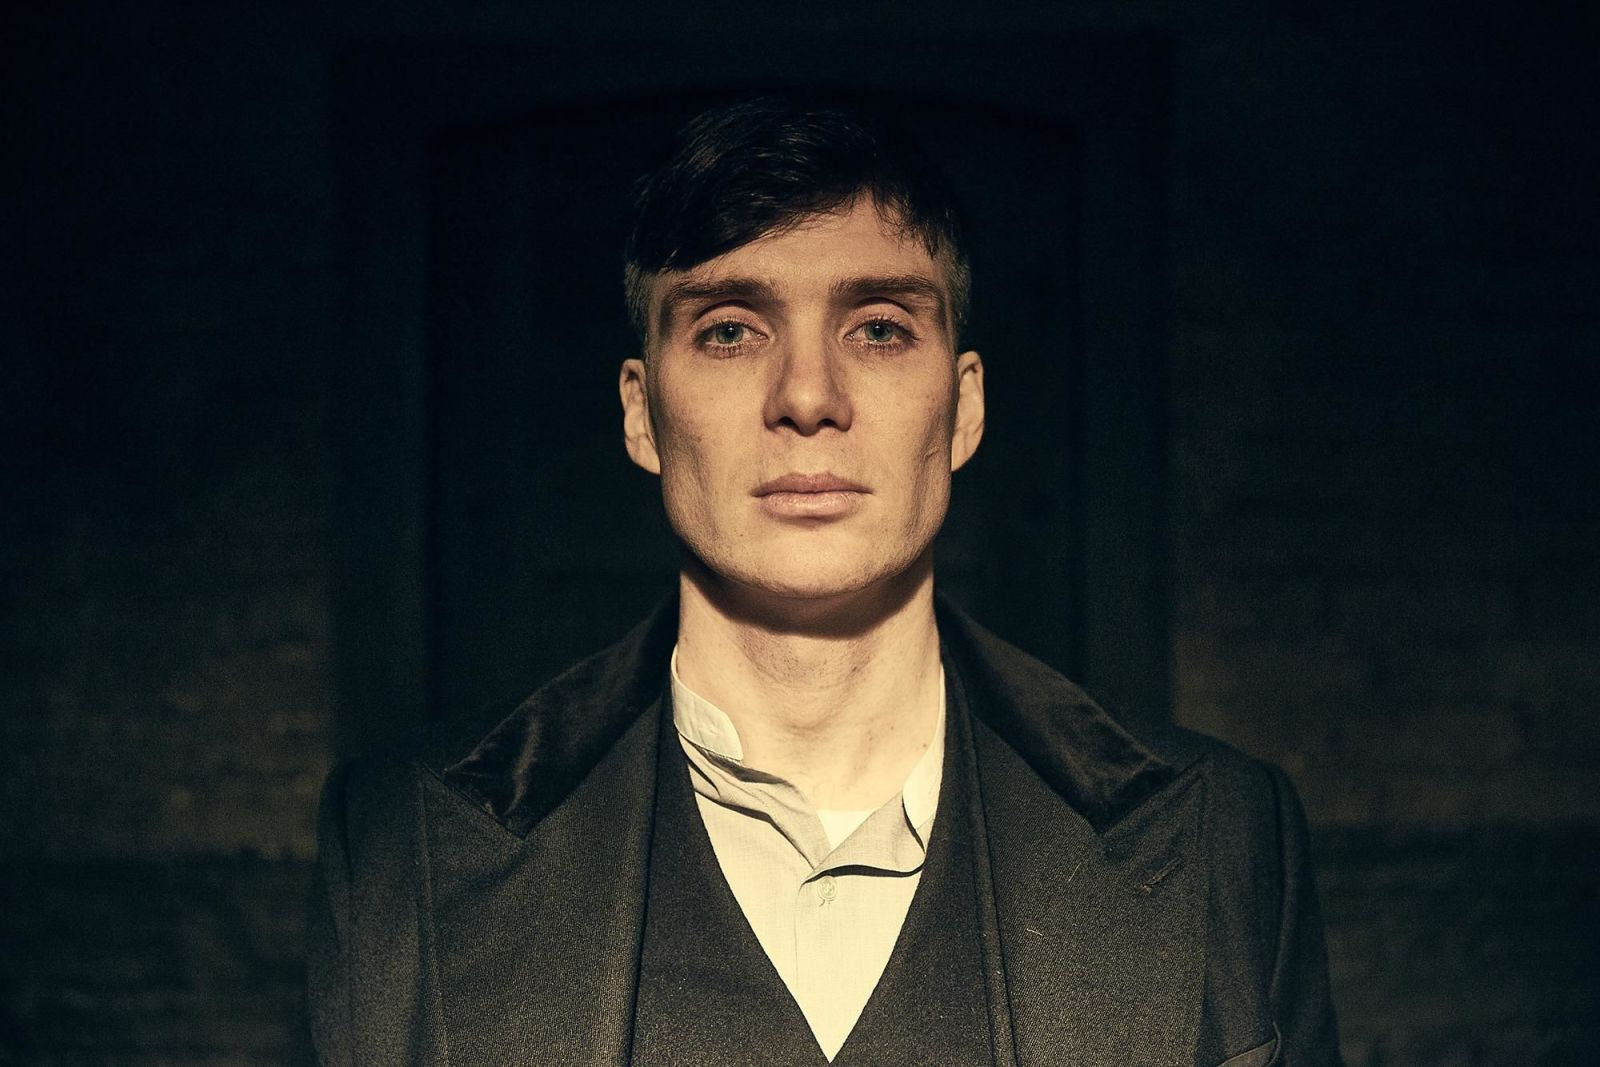 The Definitive 'Peaky Blinders' Style Guide